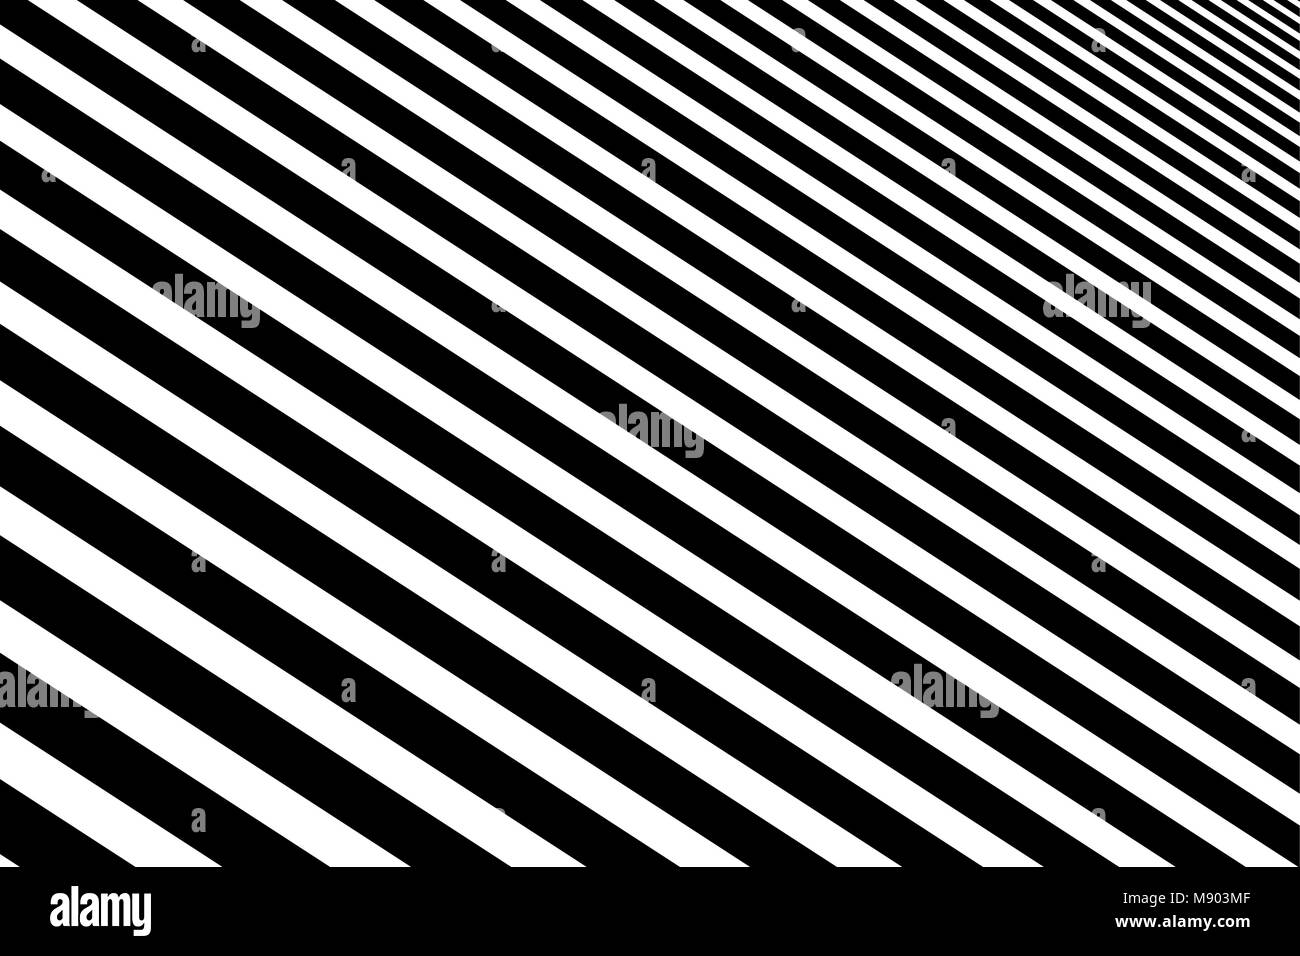 simple striped background black and white diagonal lines black